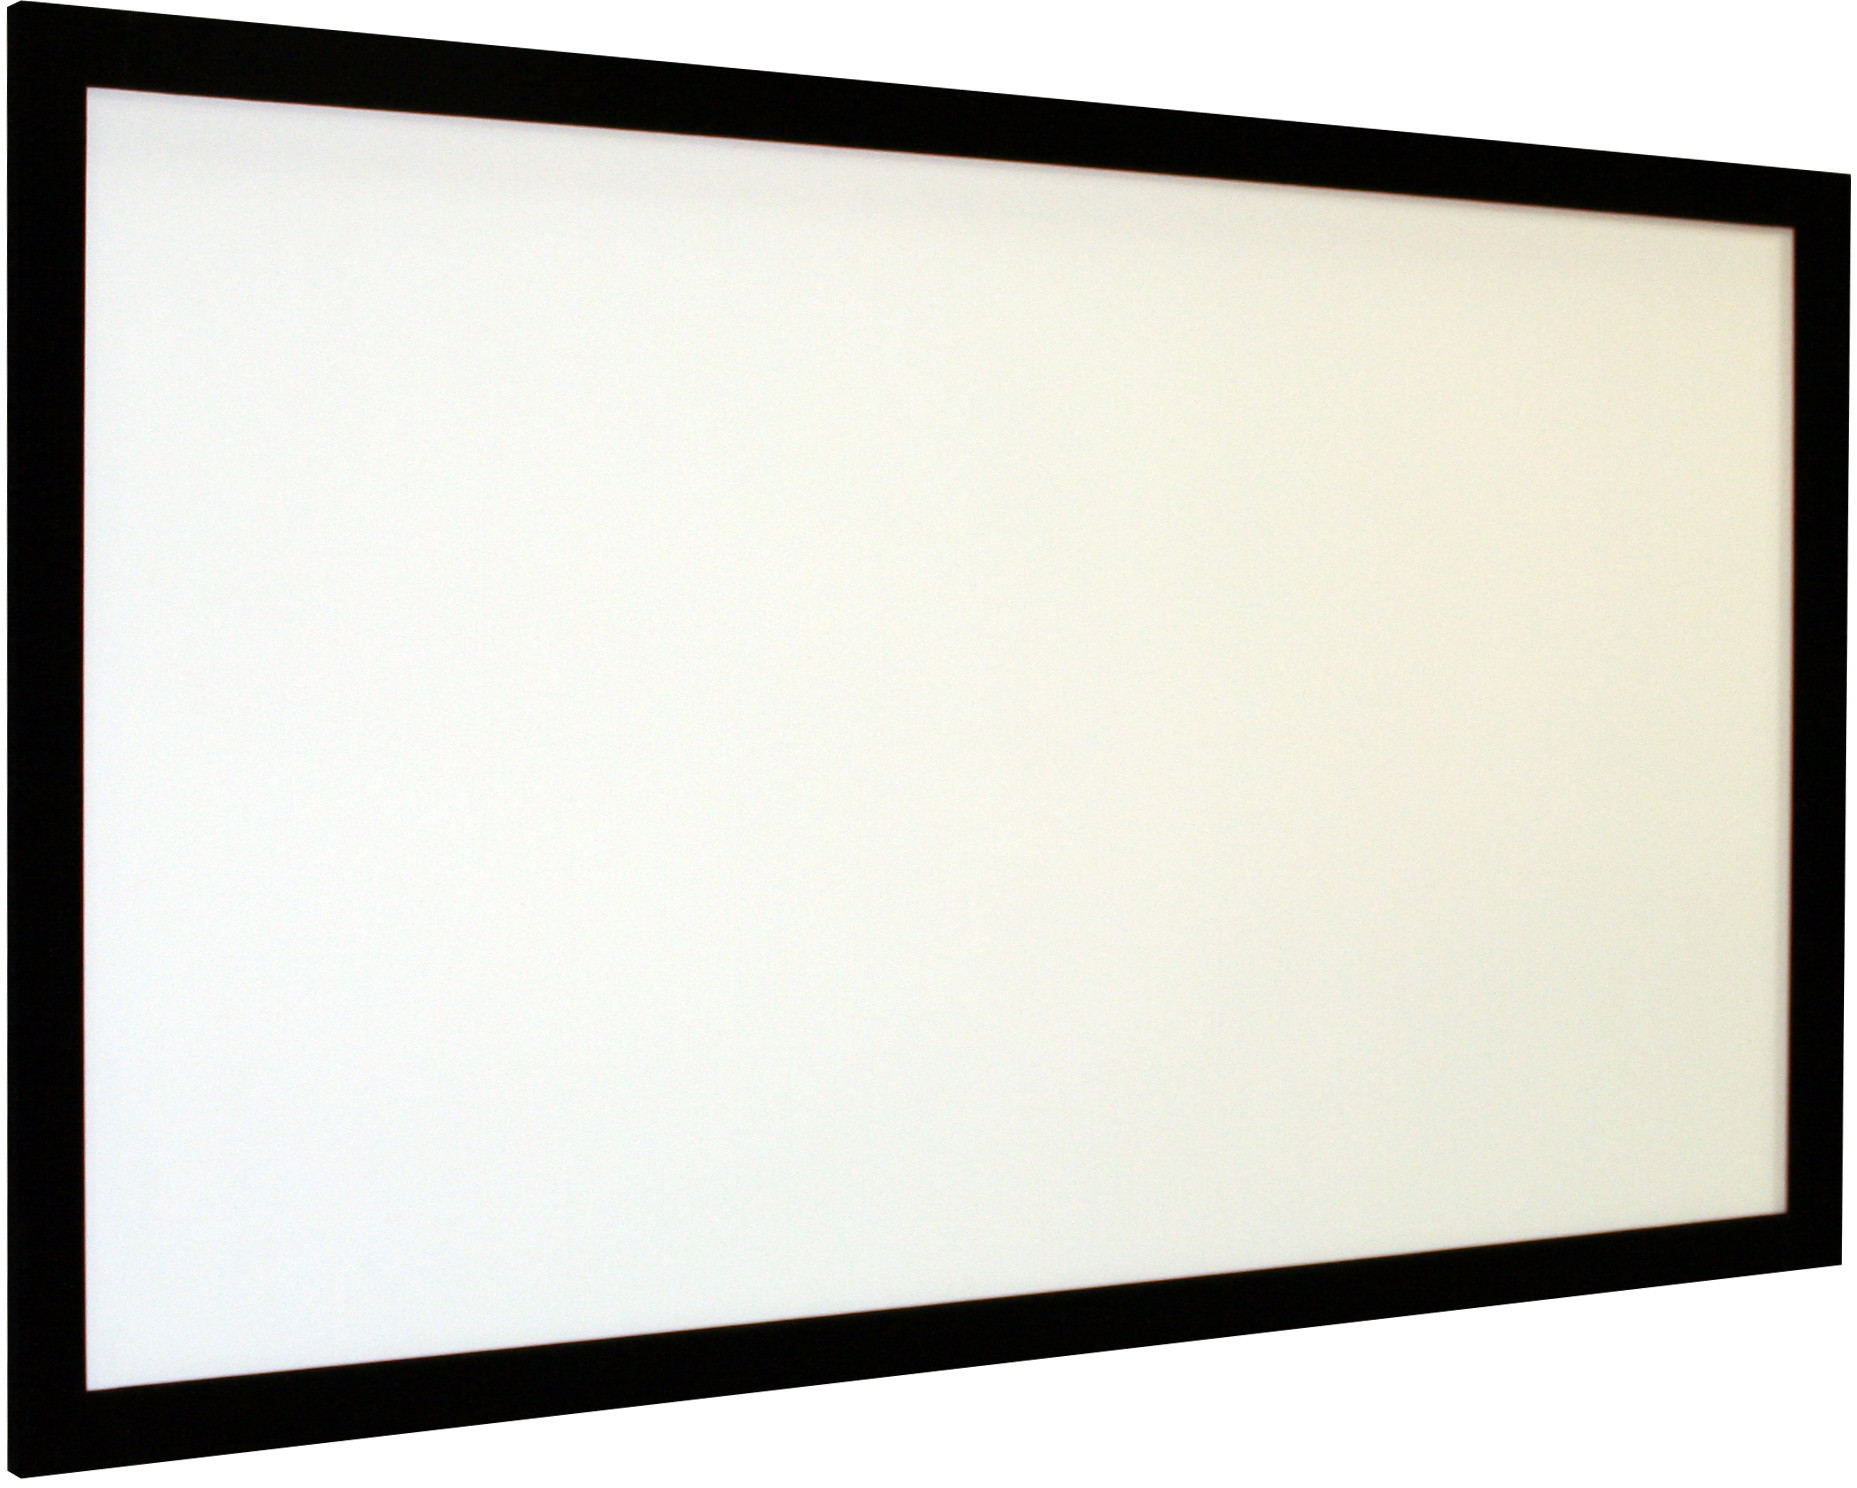 Vision Light 200 x 125 cm data format og Veltex ramme